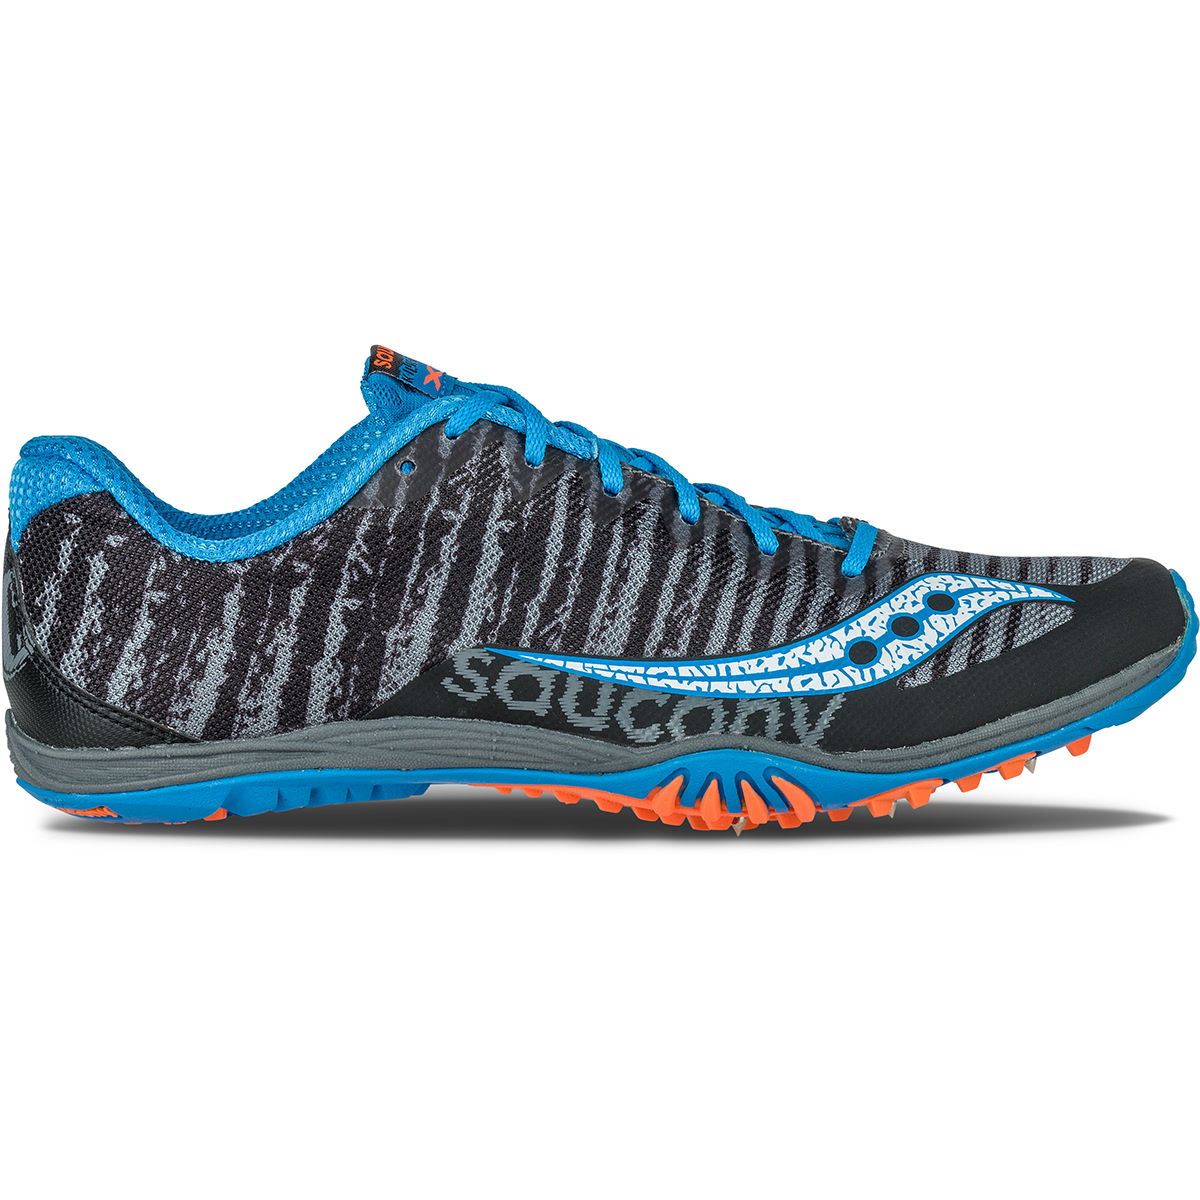 Chaussures de cross-country Saucony Kilkenny (AH16) - 7,5 UK Black/Carolina Chaussures de running à pointes